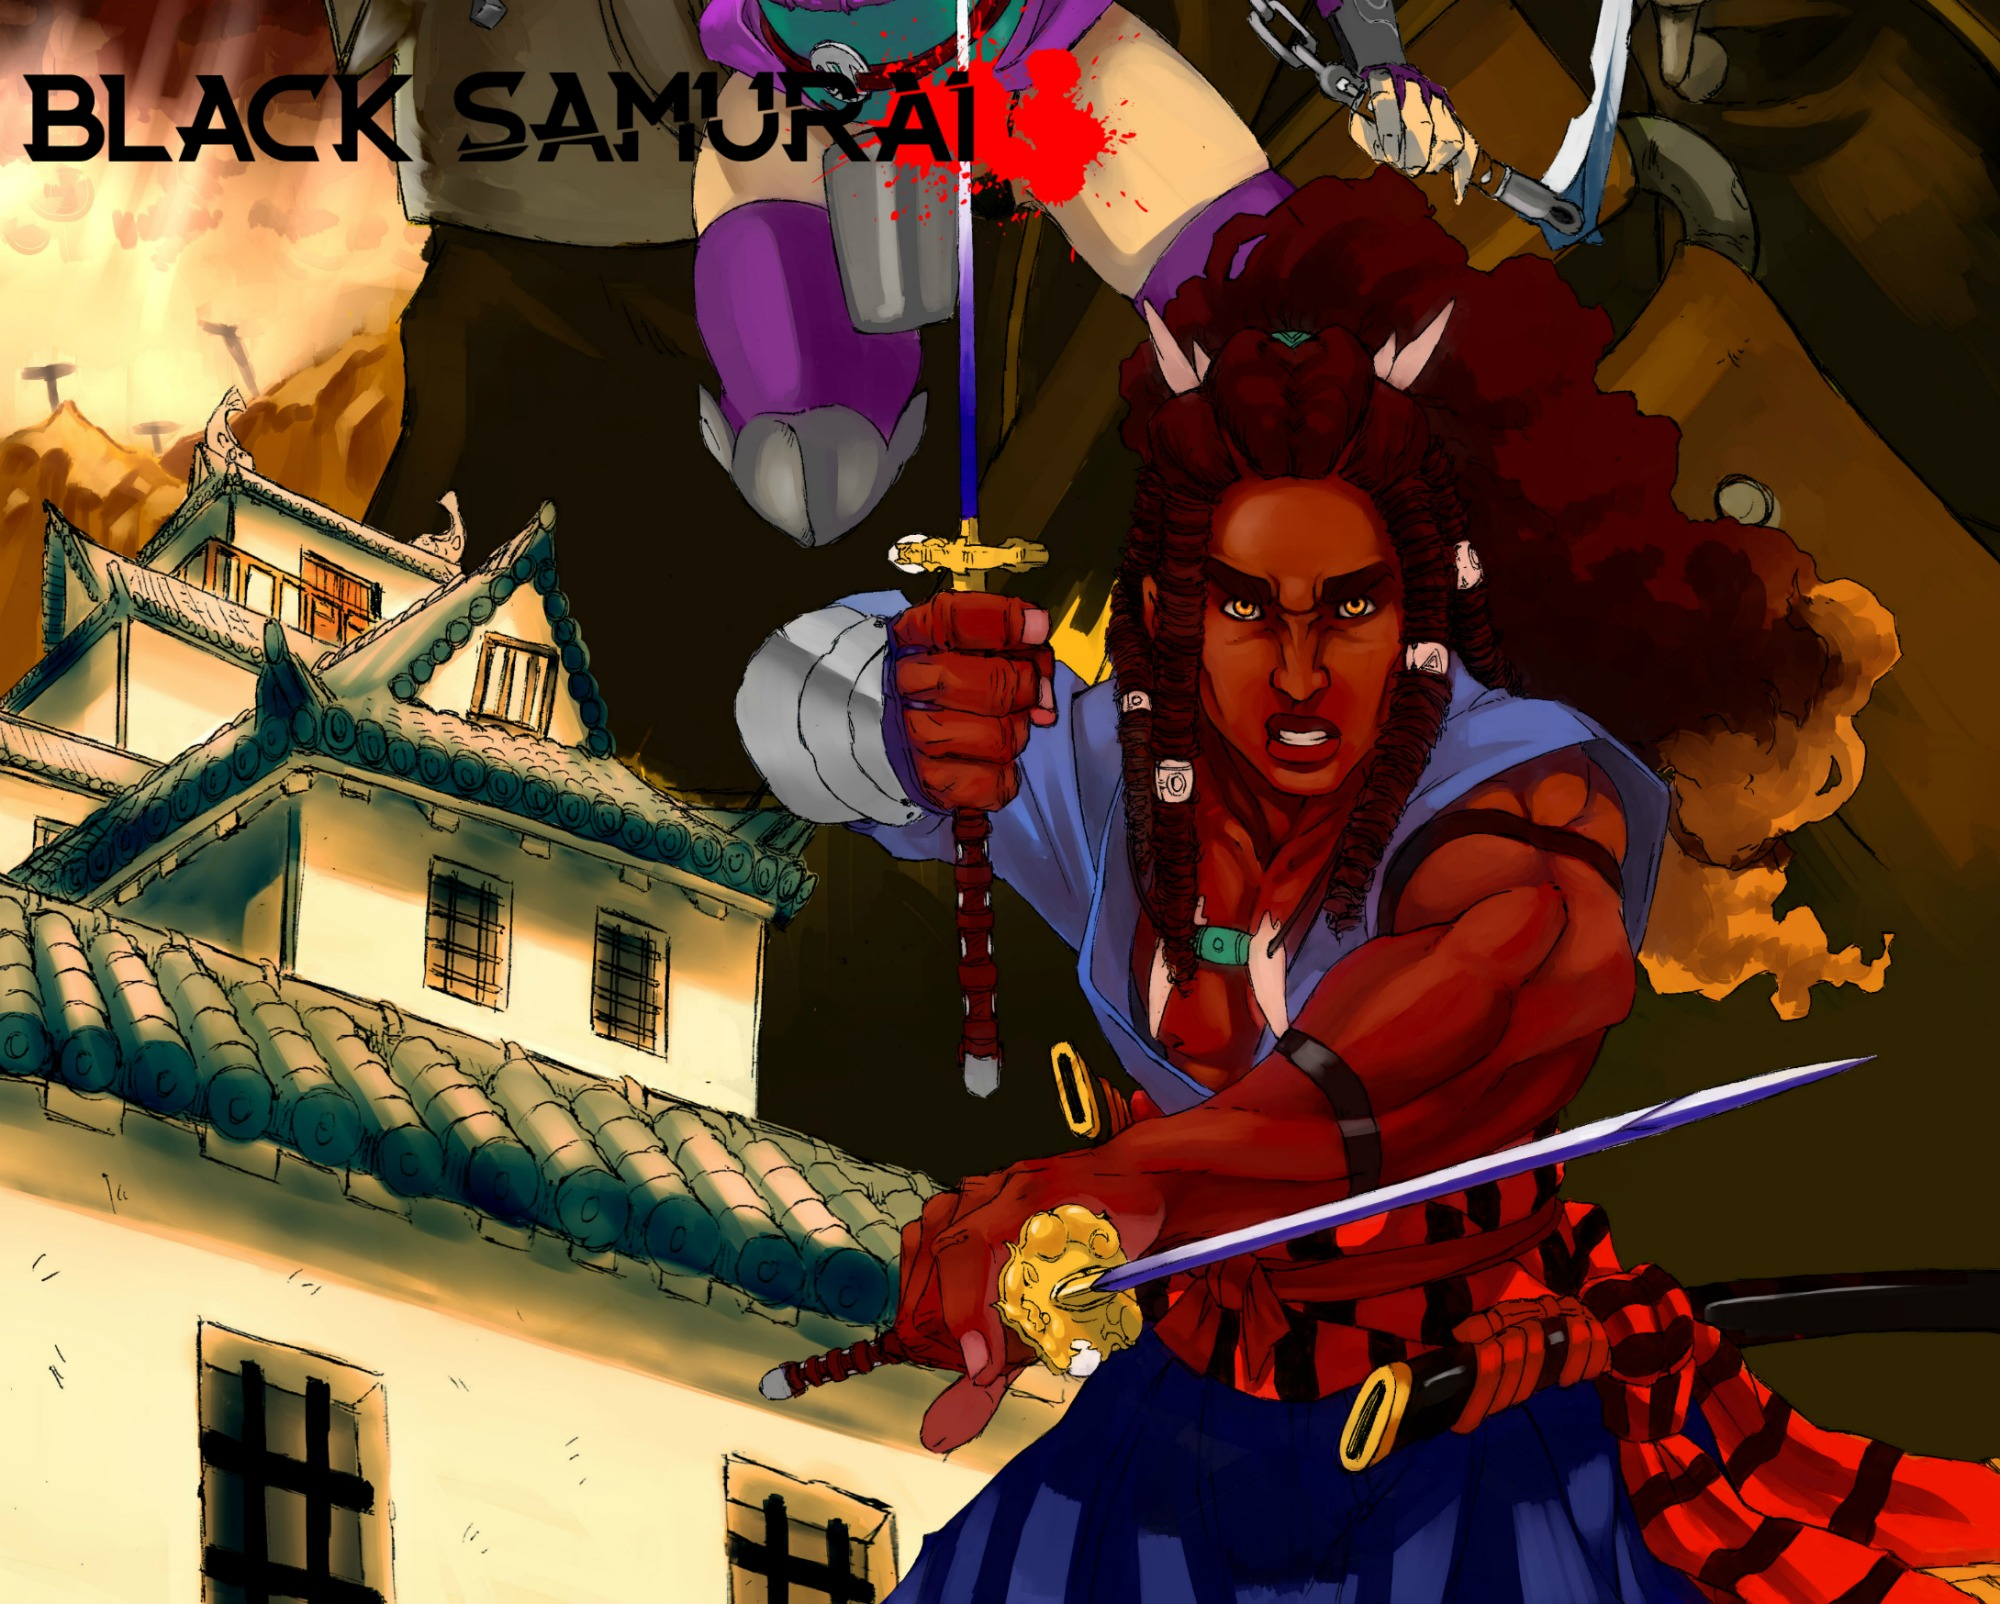 BLACK SAMURAI by Robert Burnhans is a historical fantasy seinen manga.